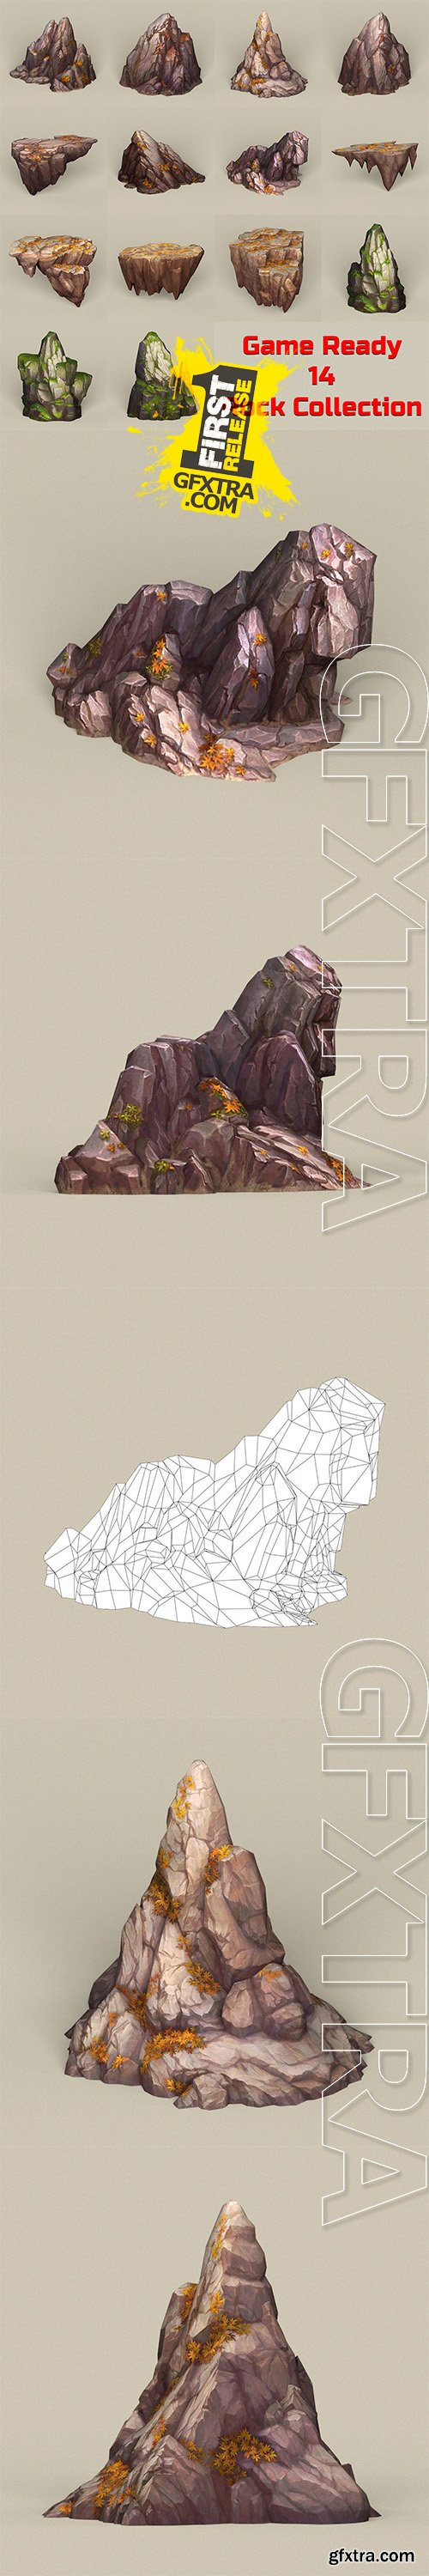 Cgtrader - Game Ready Stone Rocks Collection Low-poly 3D model